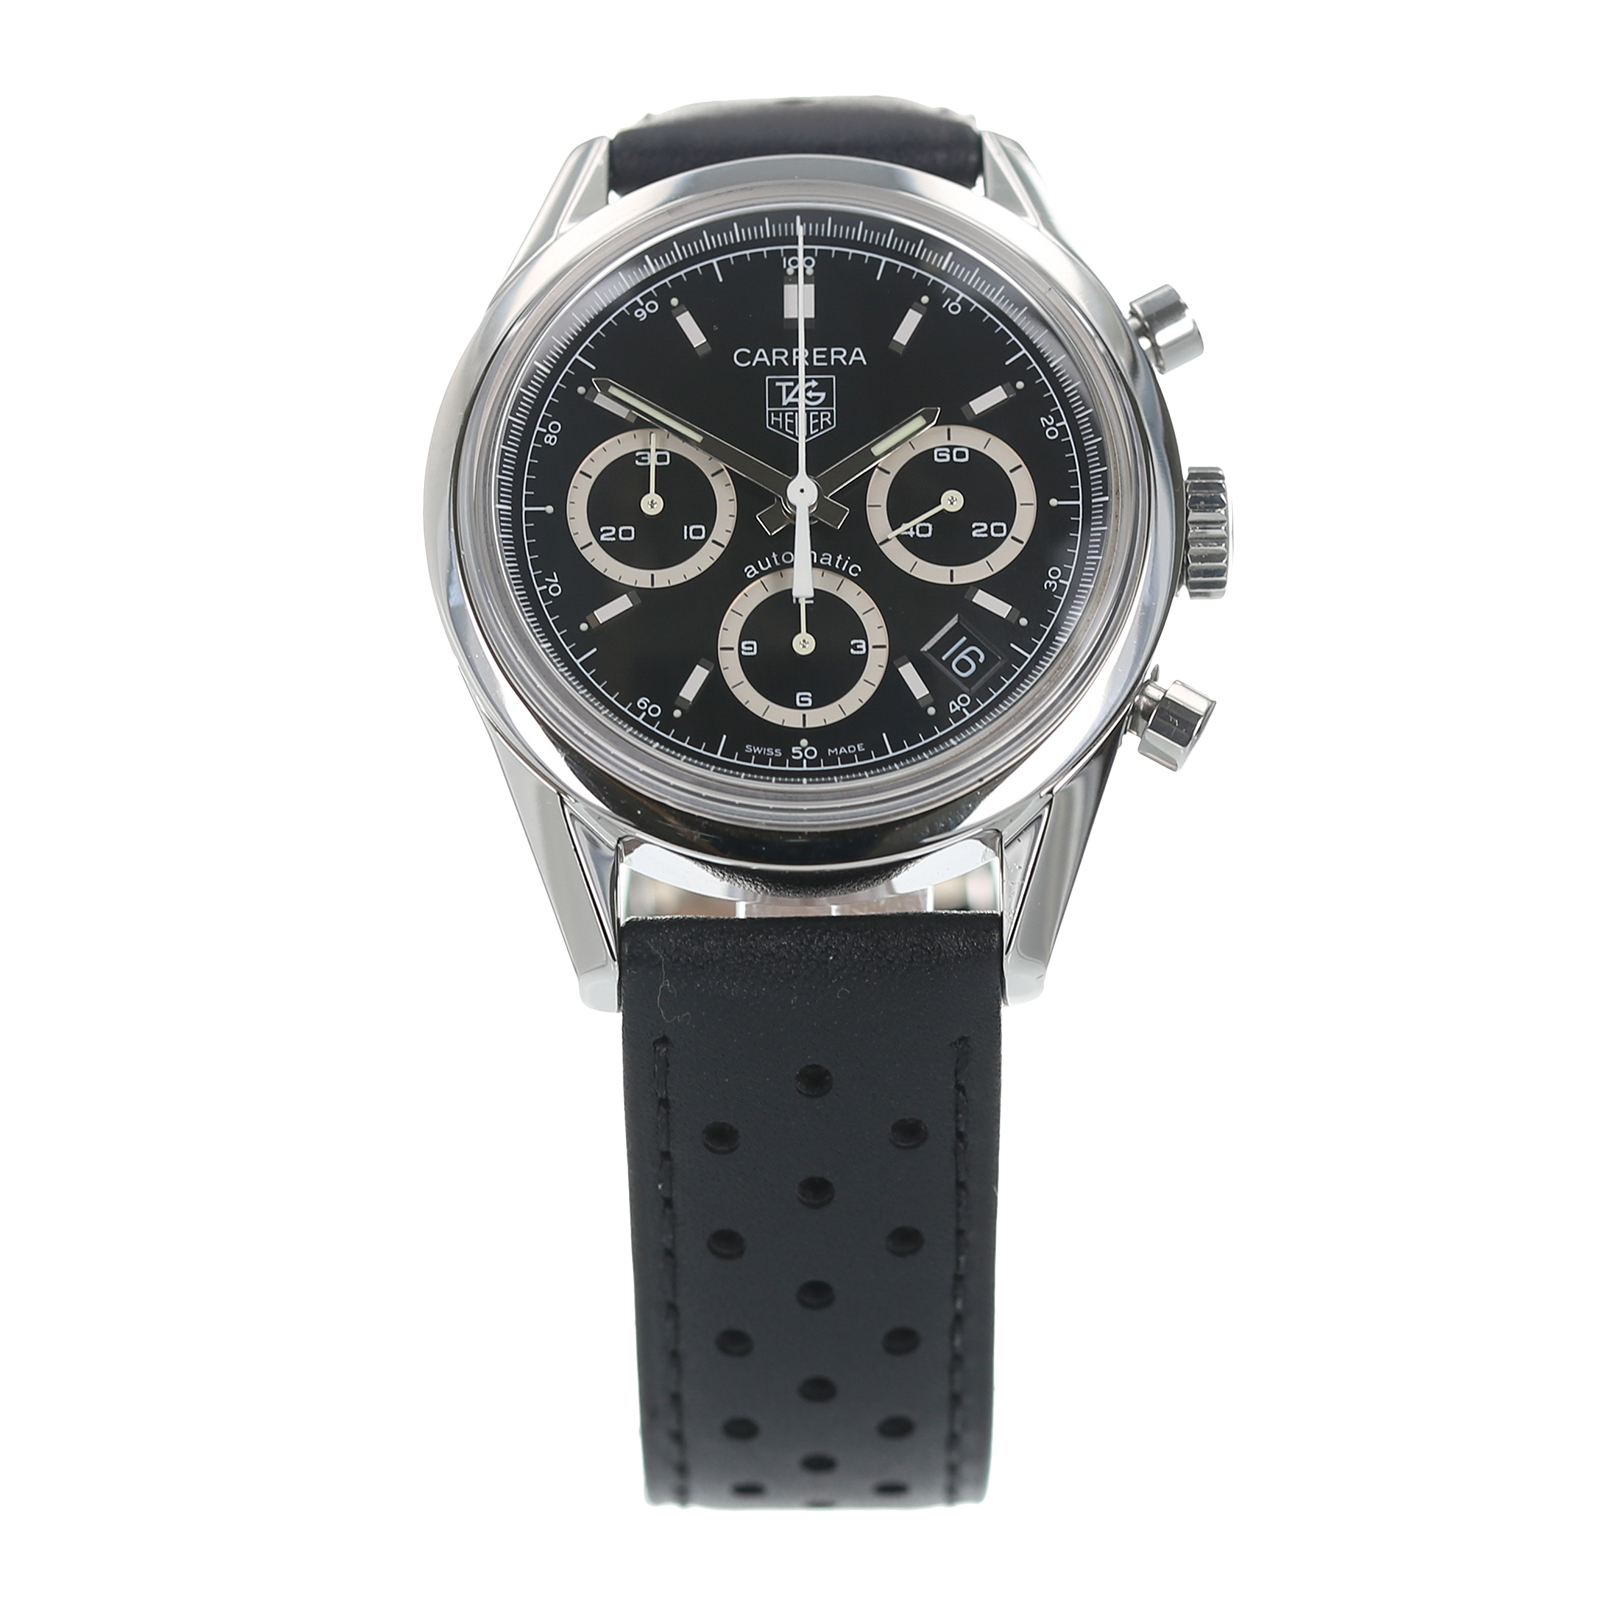 Pre-Owned TAG Heuer Carrera Chronograph Mens Watch CV2113-0